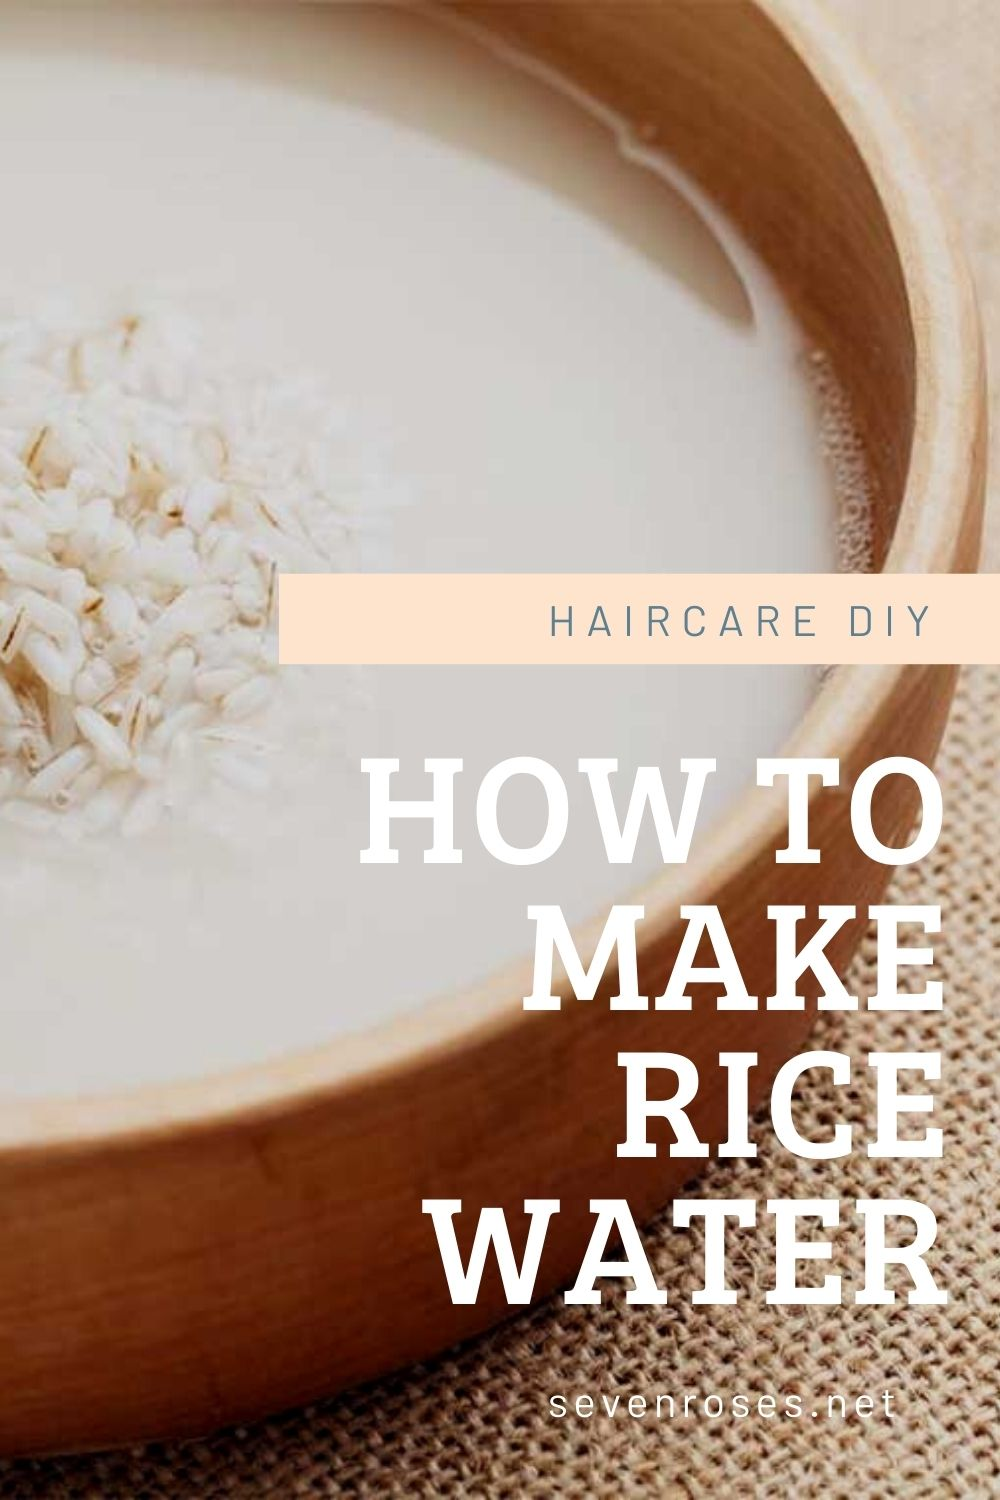 Haircare DIY: How to make rice water